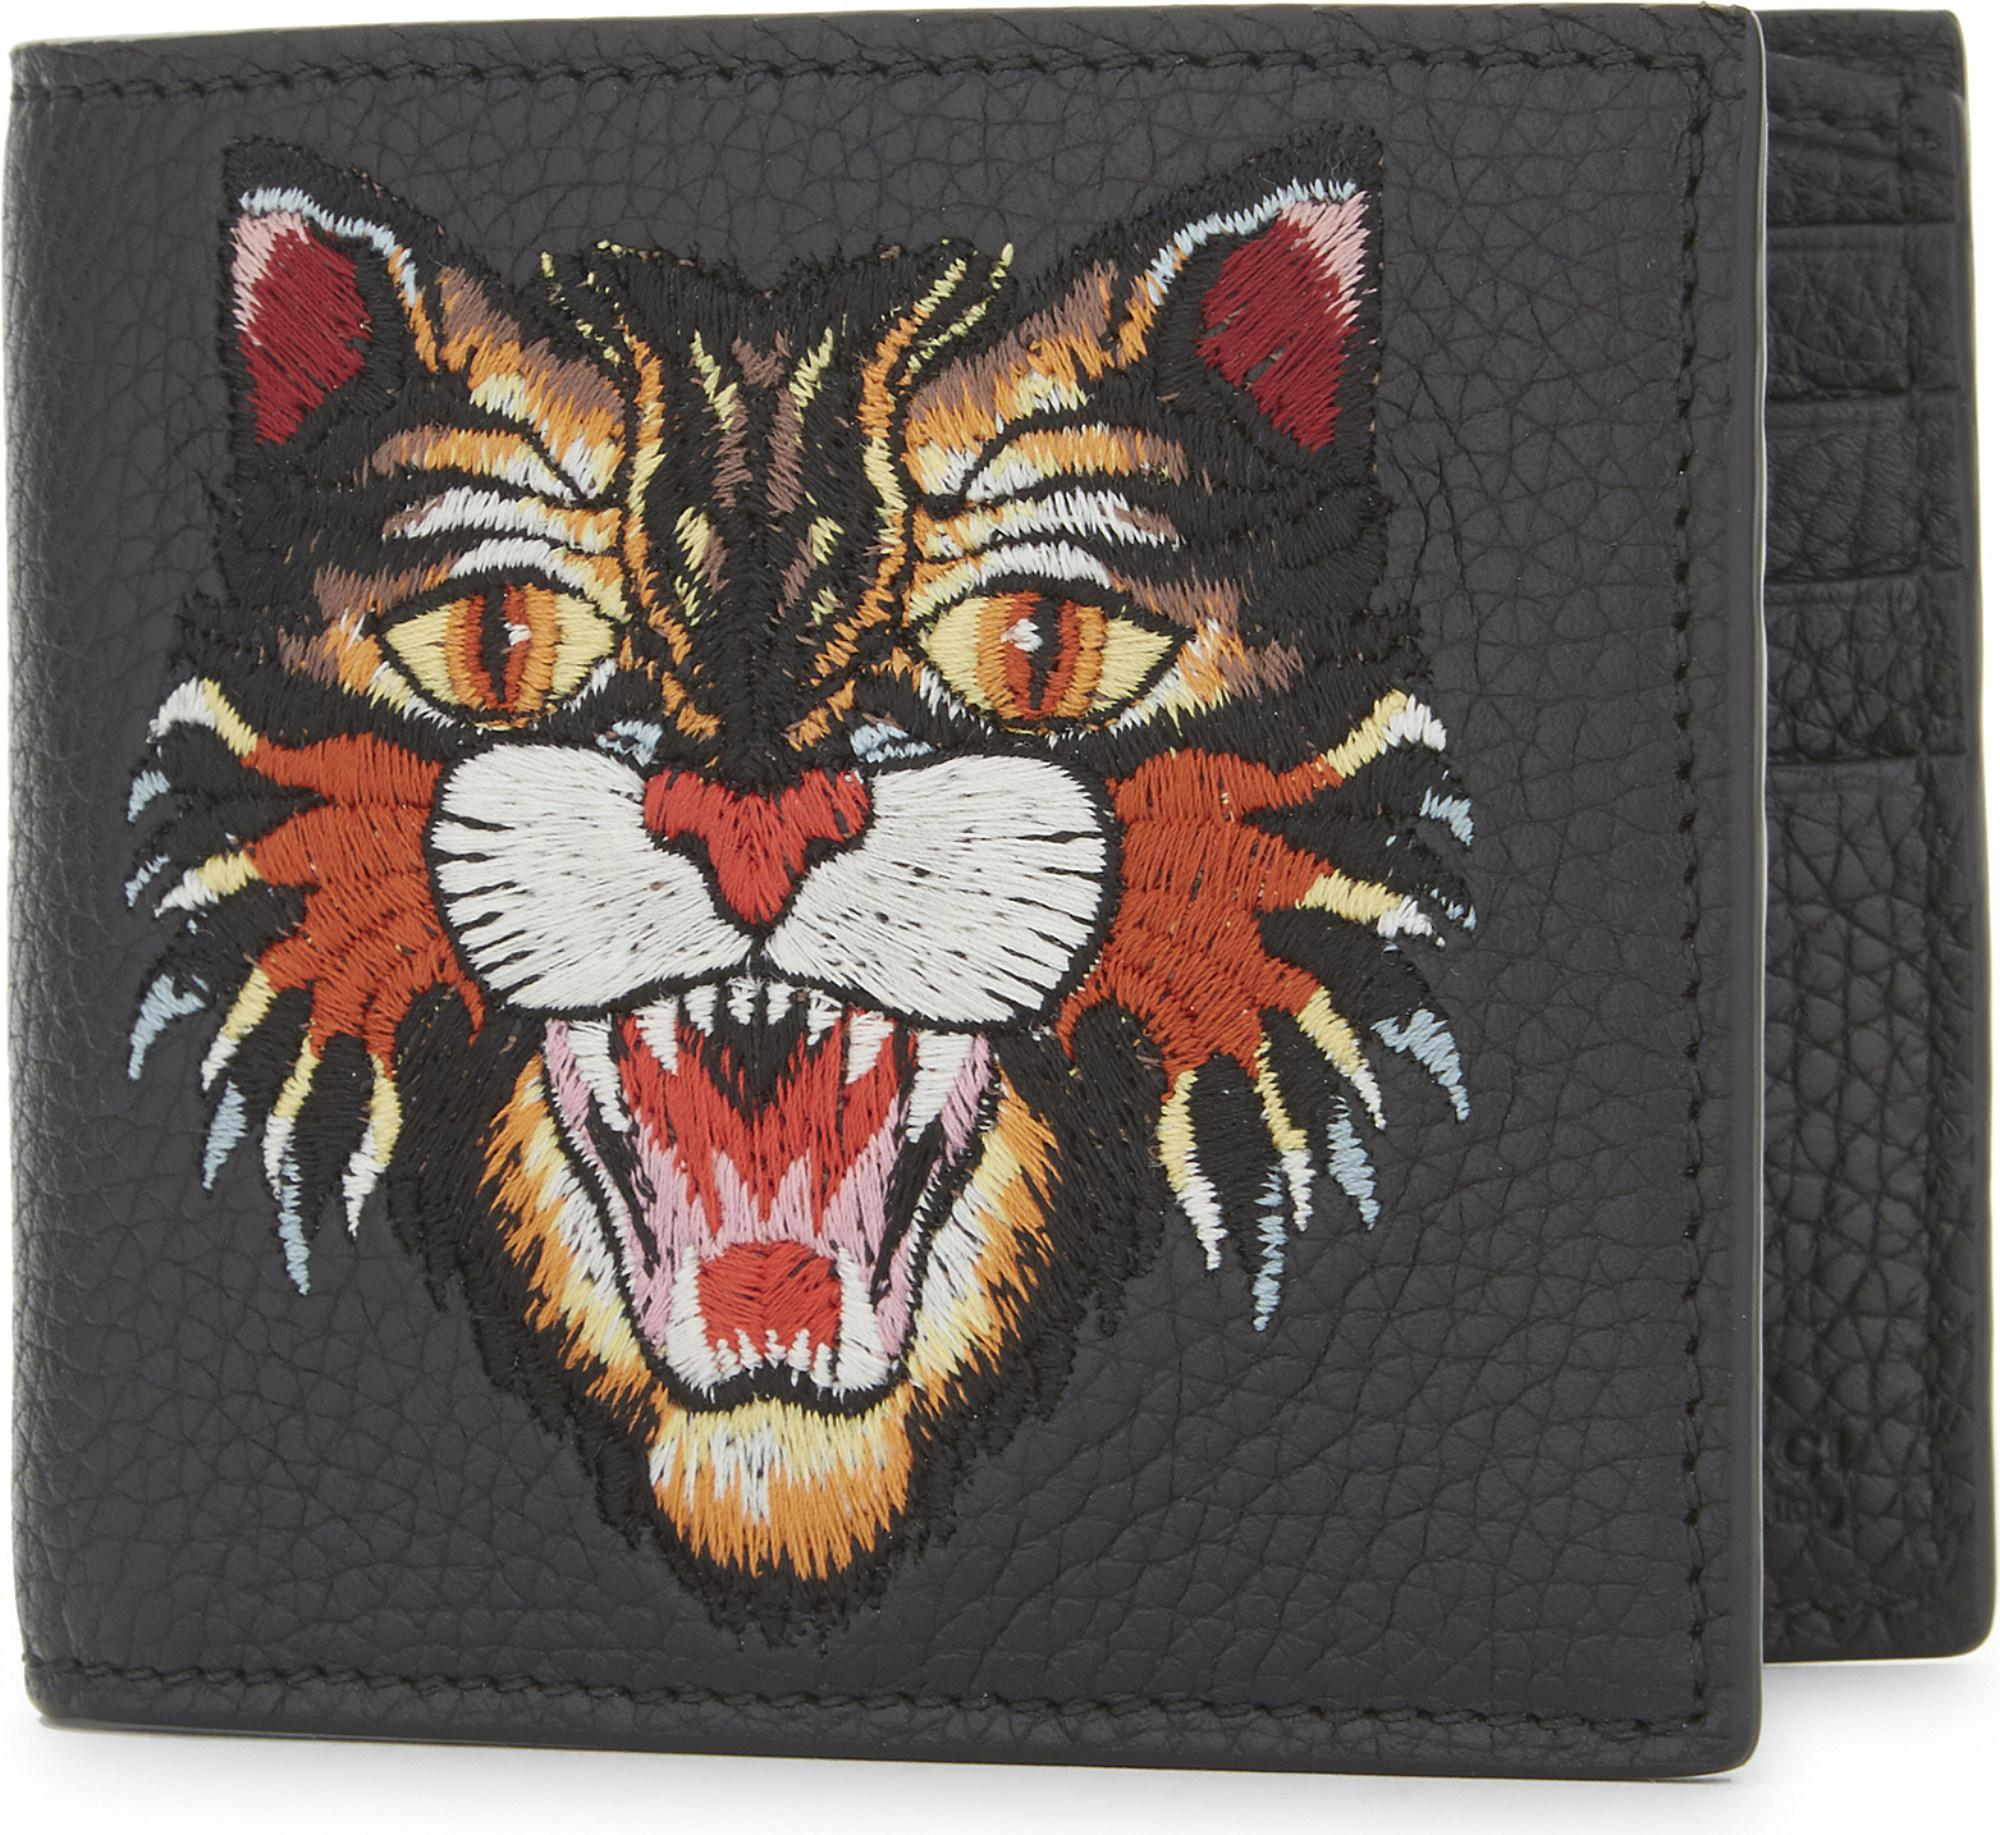 70c442840 Gucci Rev D'orient Tiger Embroidered Leather Billfold Wallet in ...